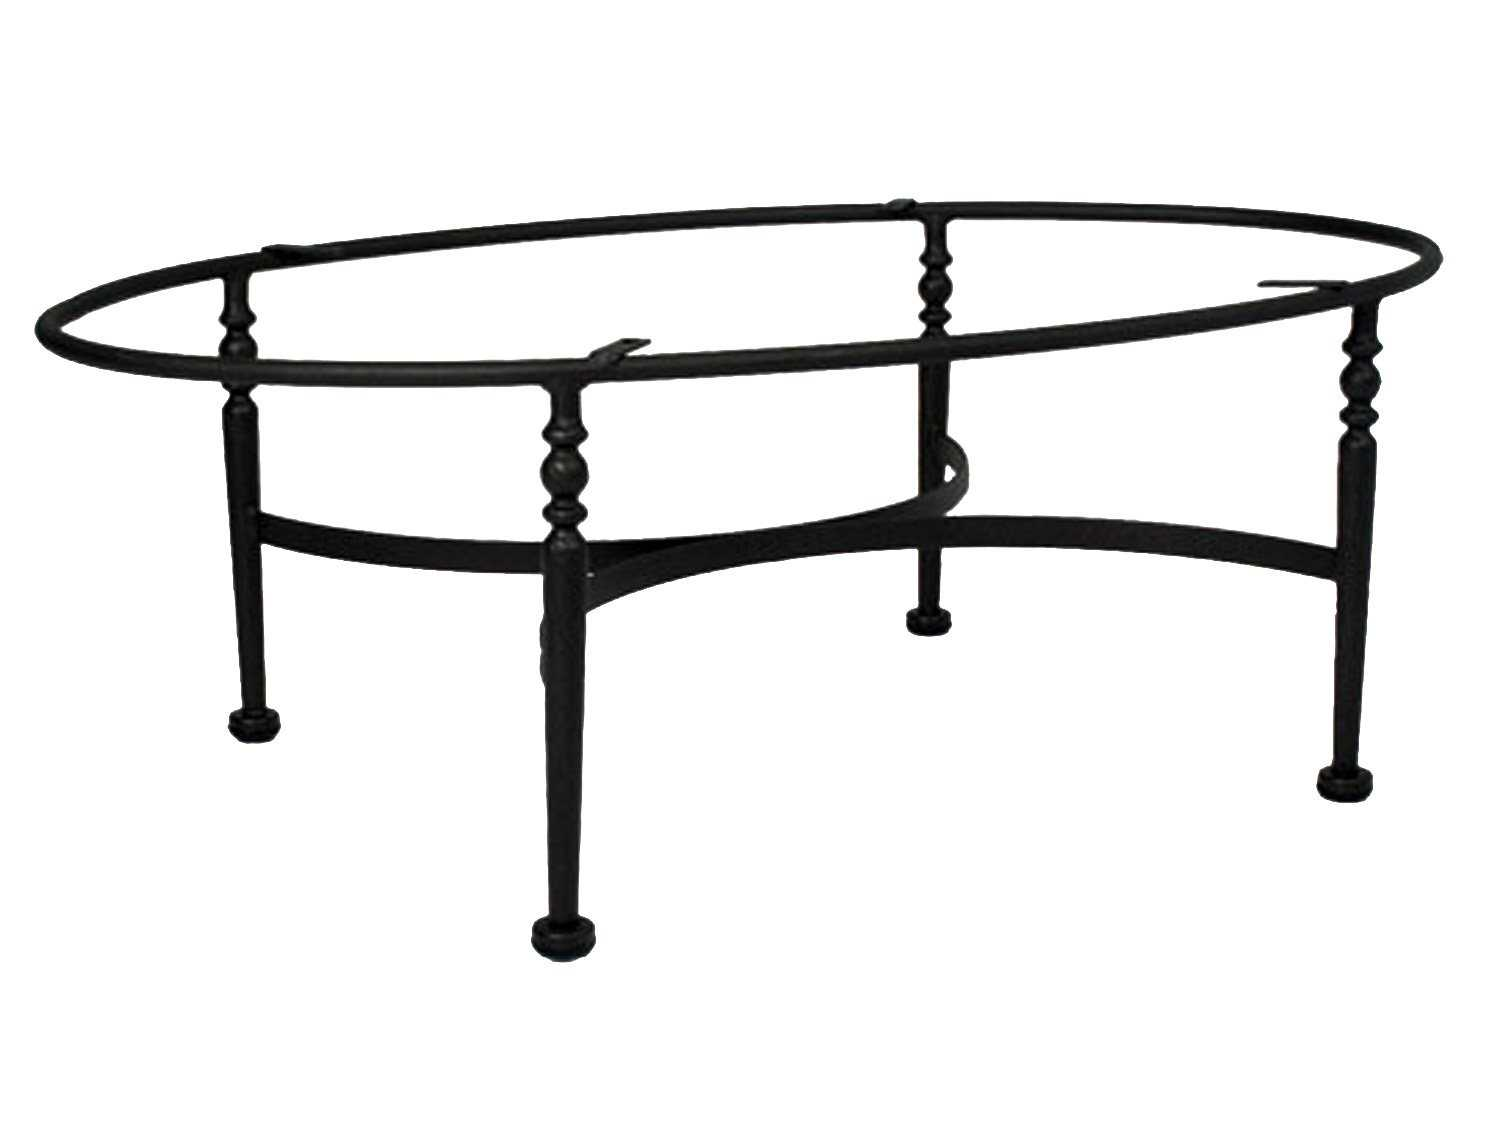 Meadowcraft Athens Wrought Iron Coffee Table Base 3613370 01